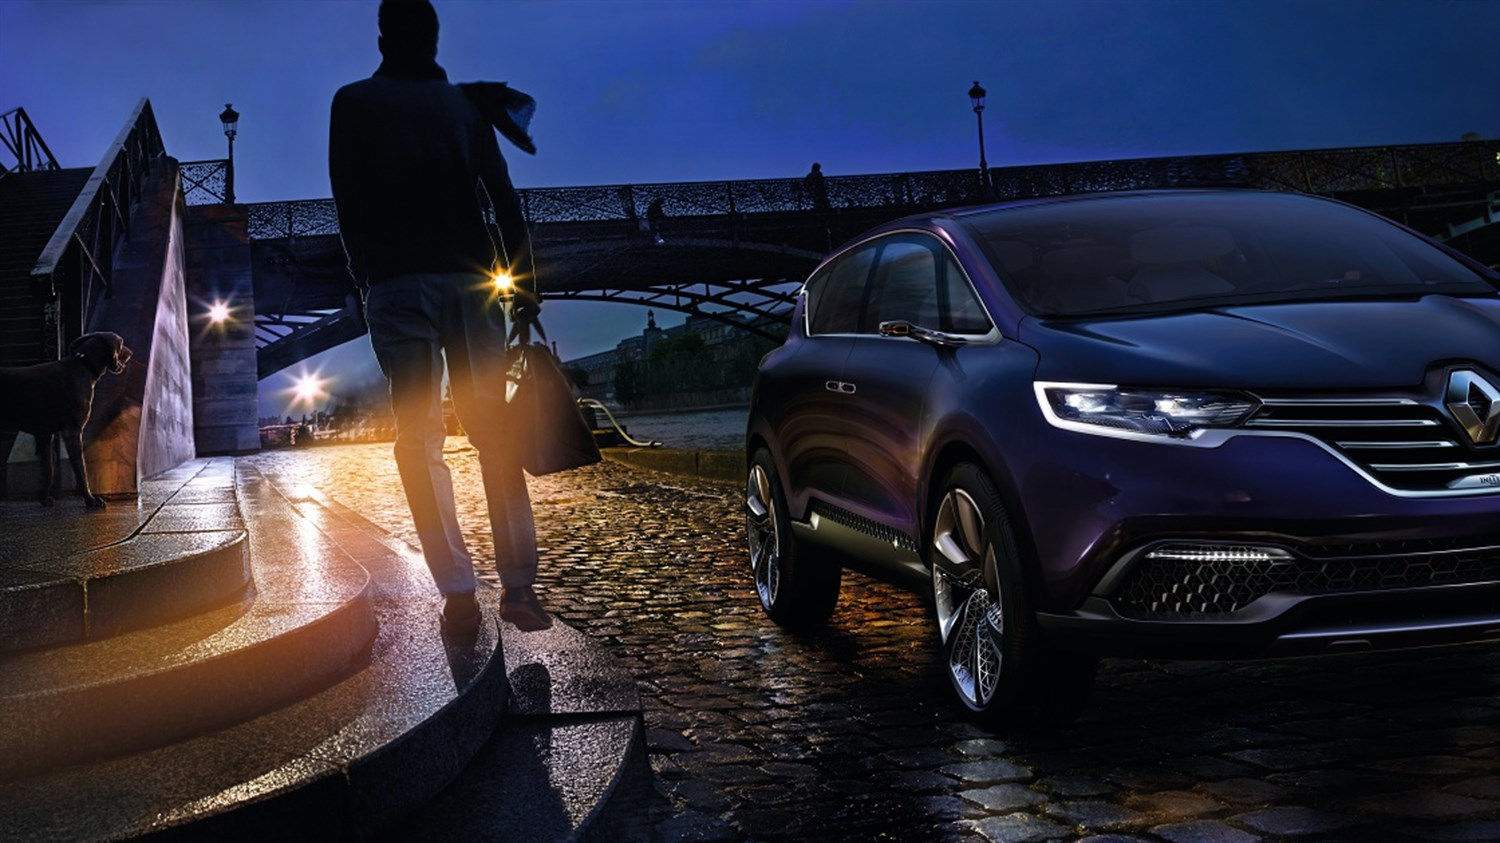 Renault INITIALE PARIS Concept - night-time view - banks of the Seine